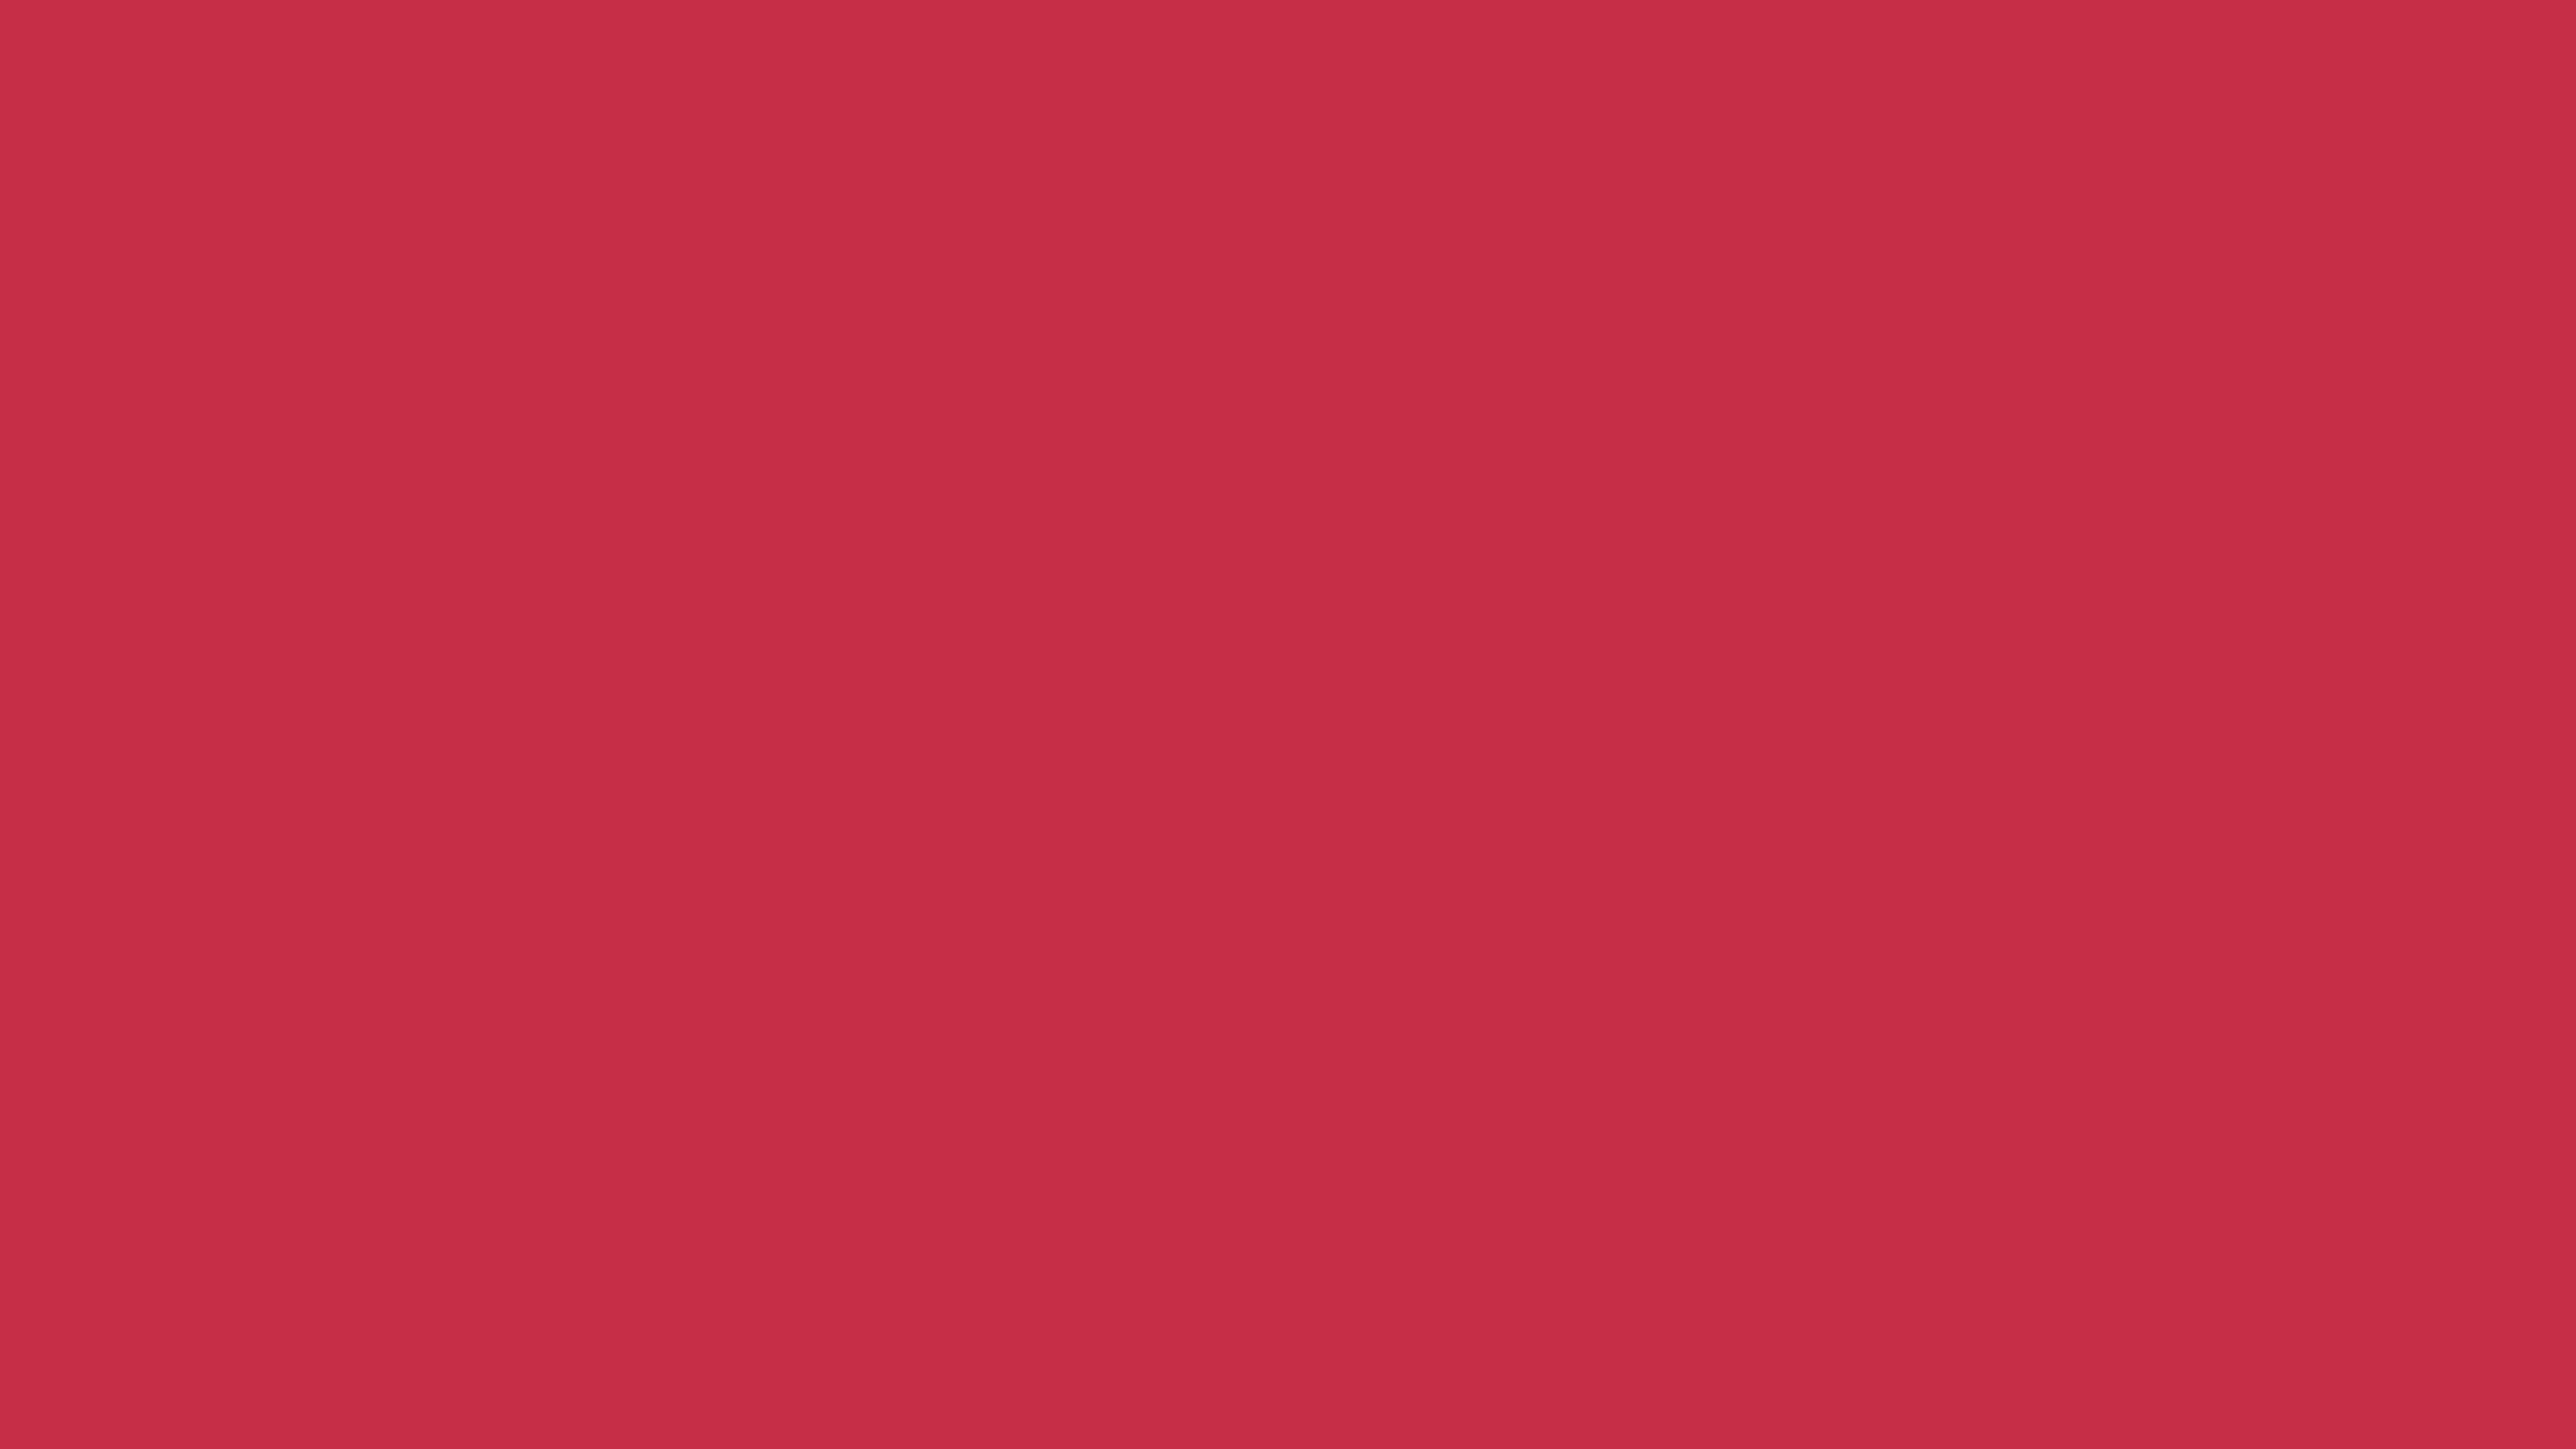 3840x2160 French Raspberry Solid Color Background